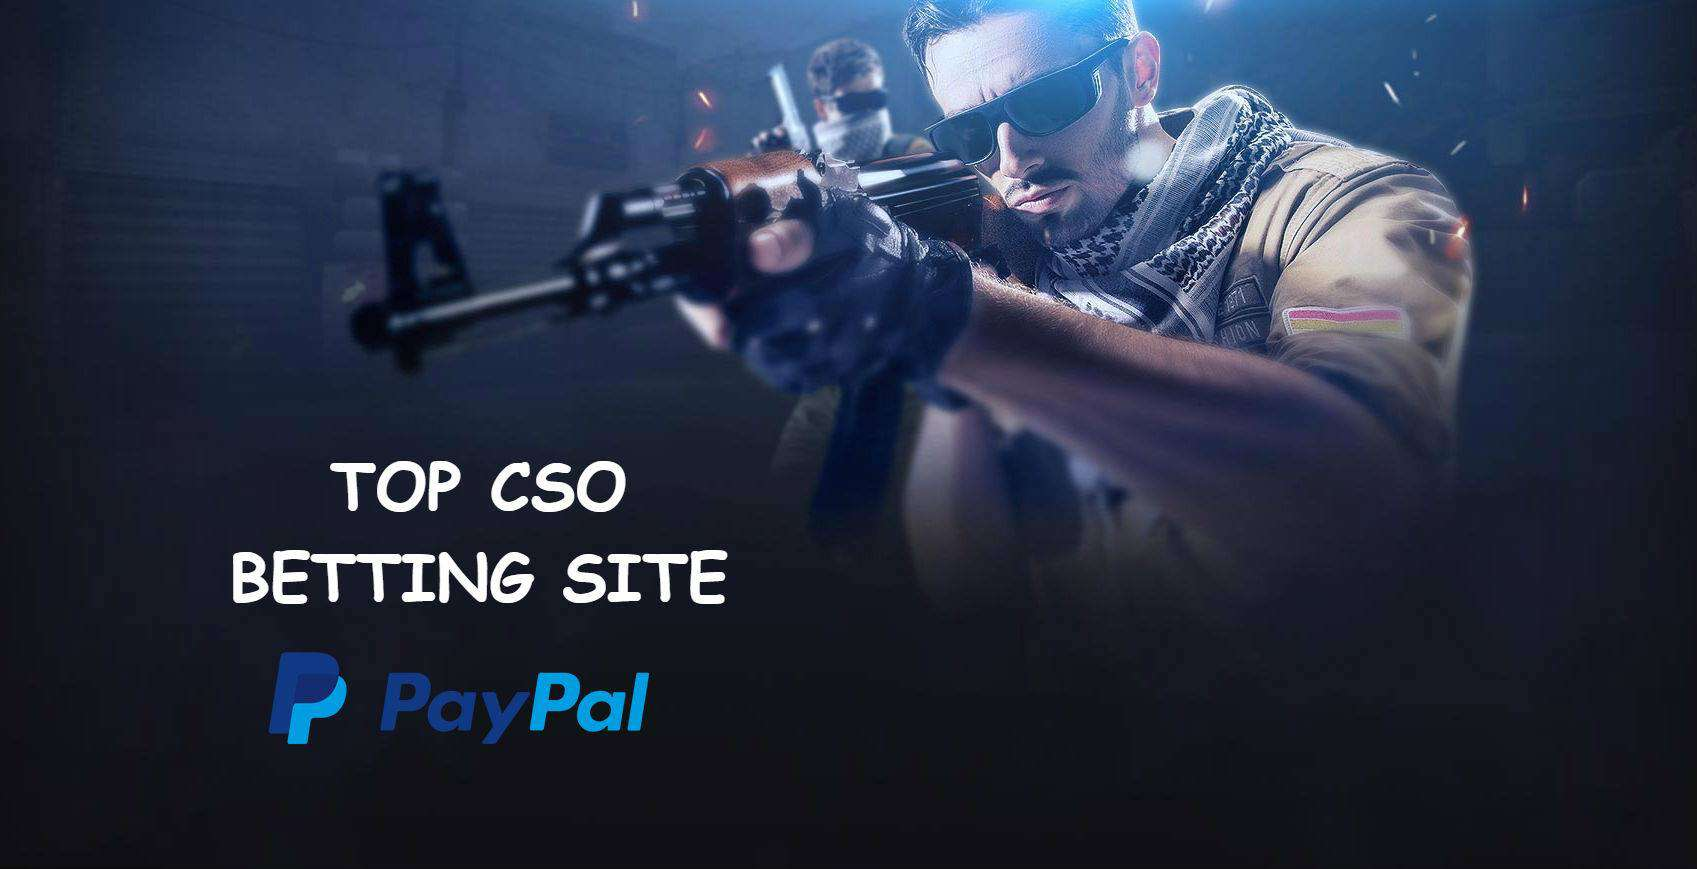 CSGO betting with paypal